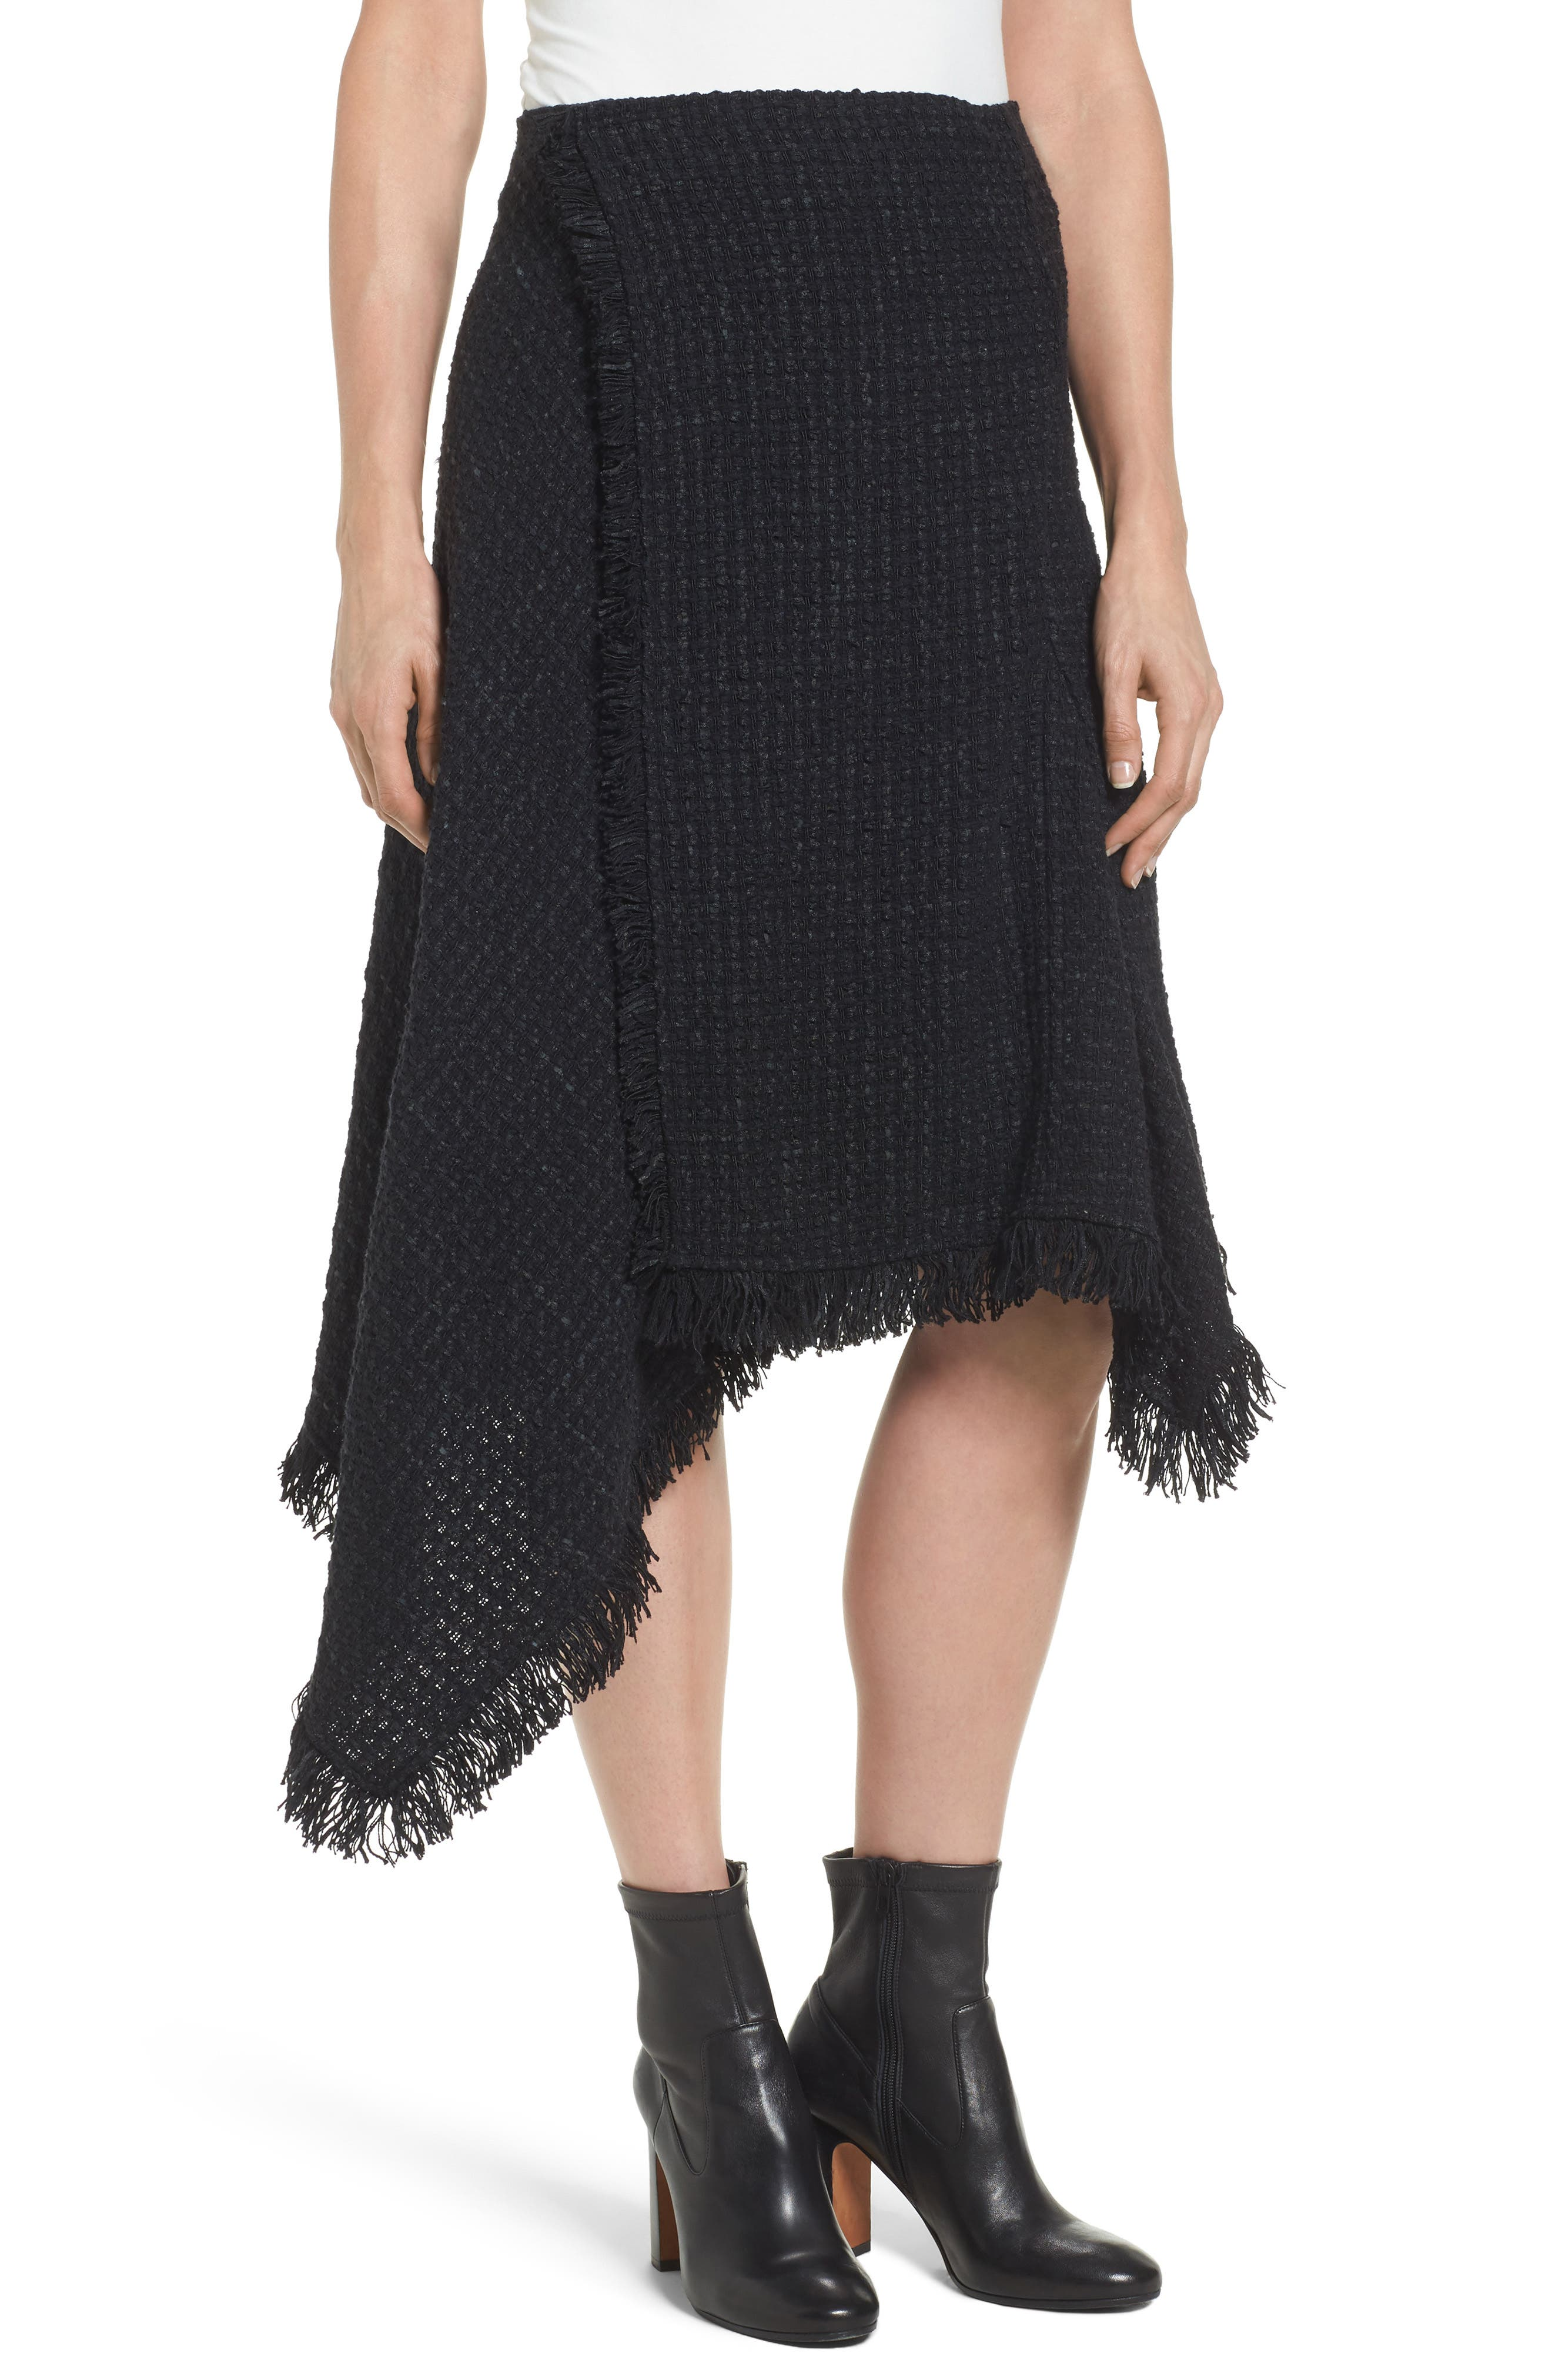 NIC + ZOE Majestic Tweed Skirt